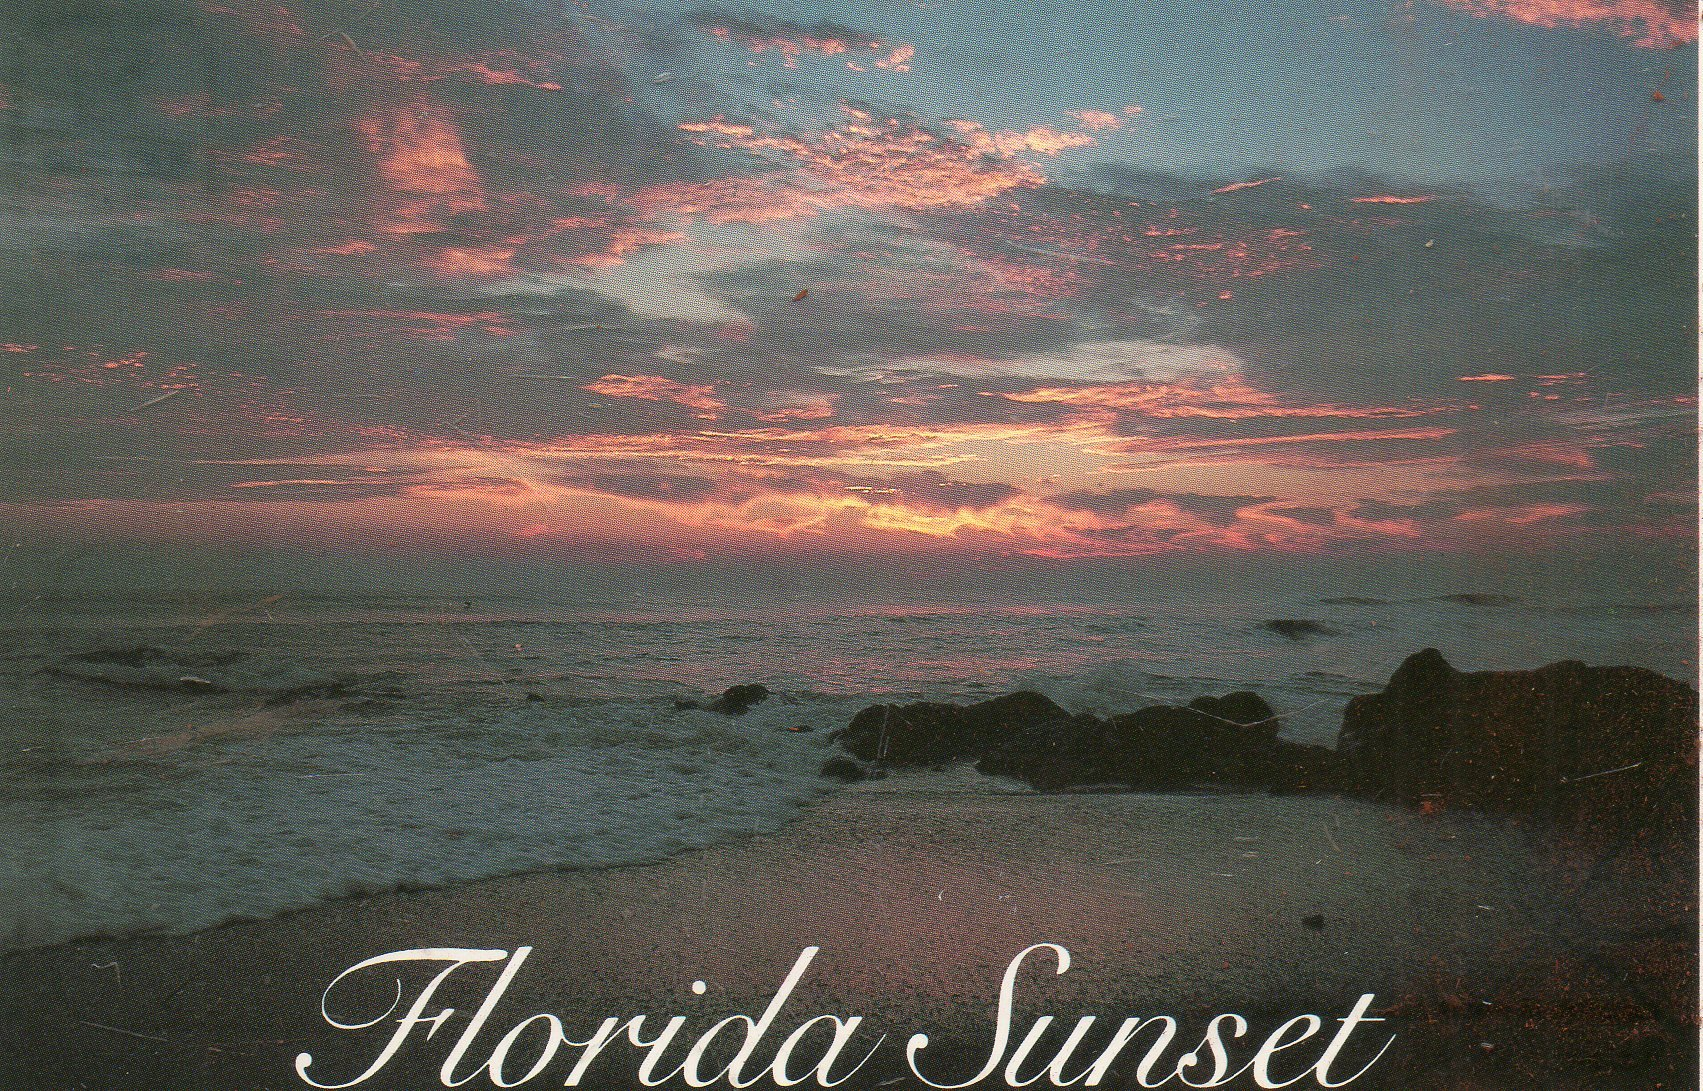 Post Card Florida Sunset Hsc 513 Greetings From Colorful Florida